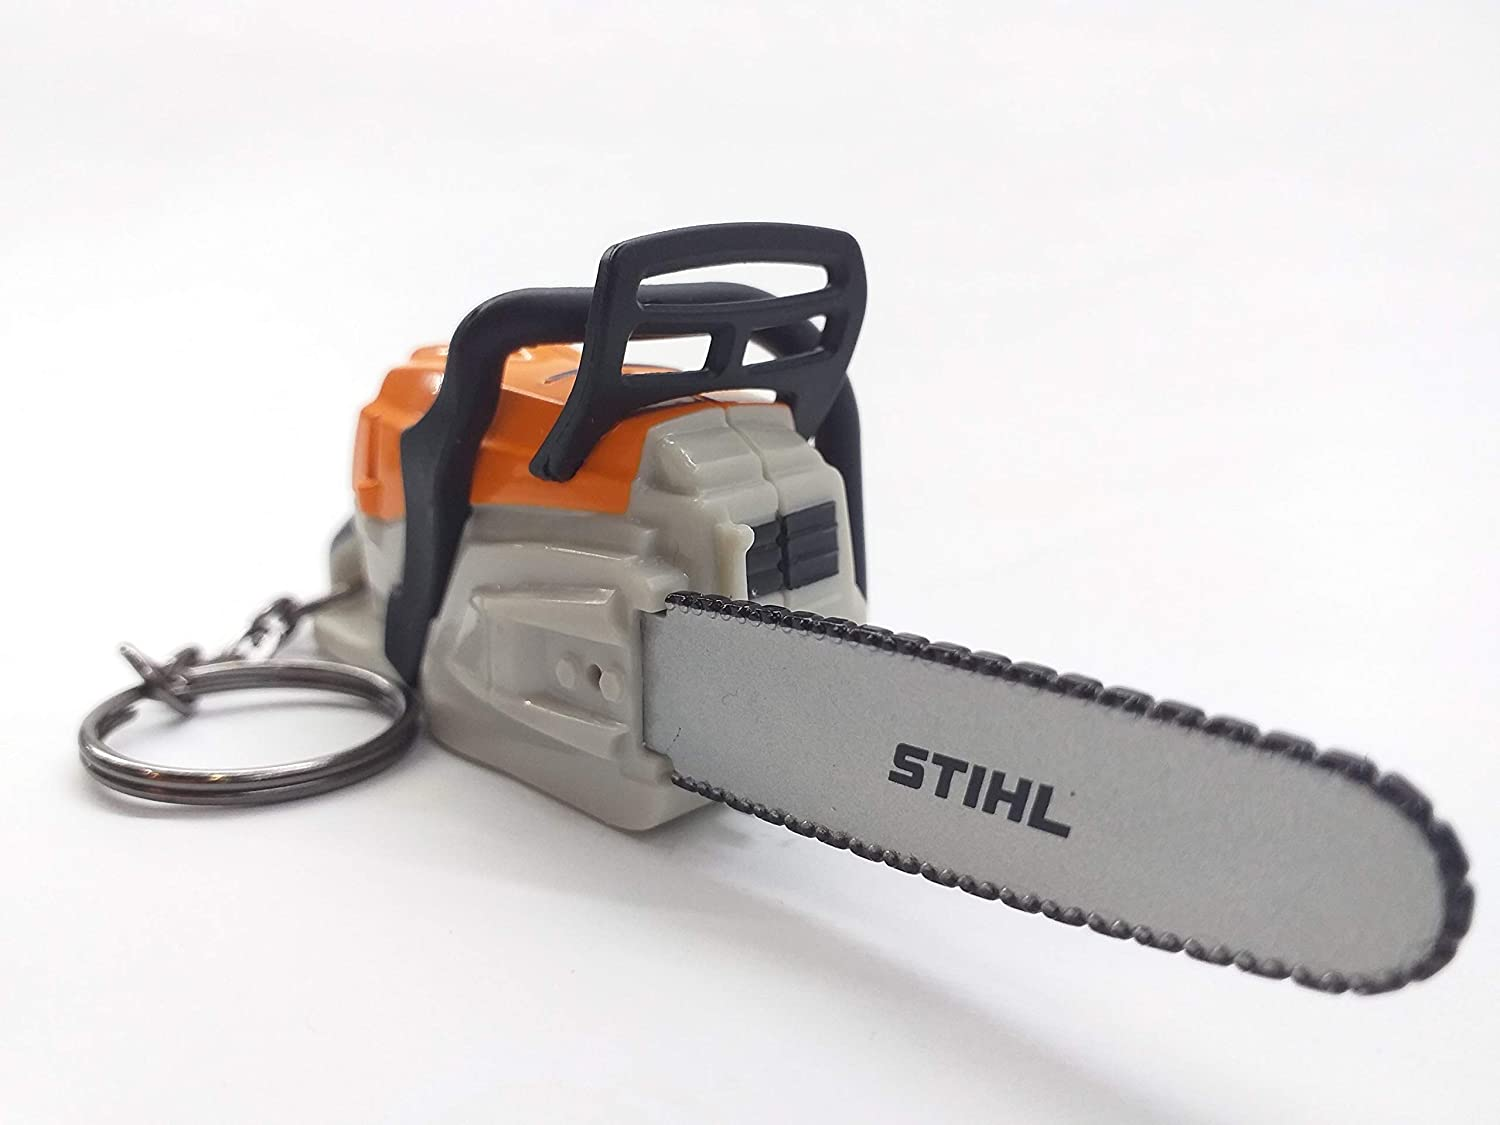 Stihl Battery Operated Chainsaw Keyring - With Sounds: Garden & Outdoor